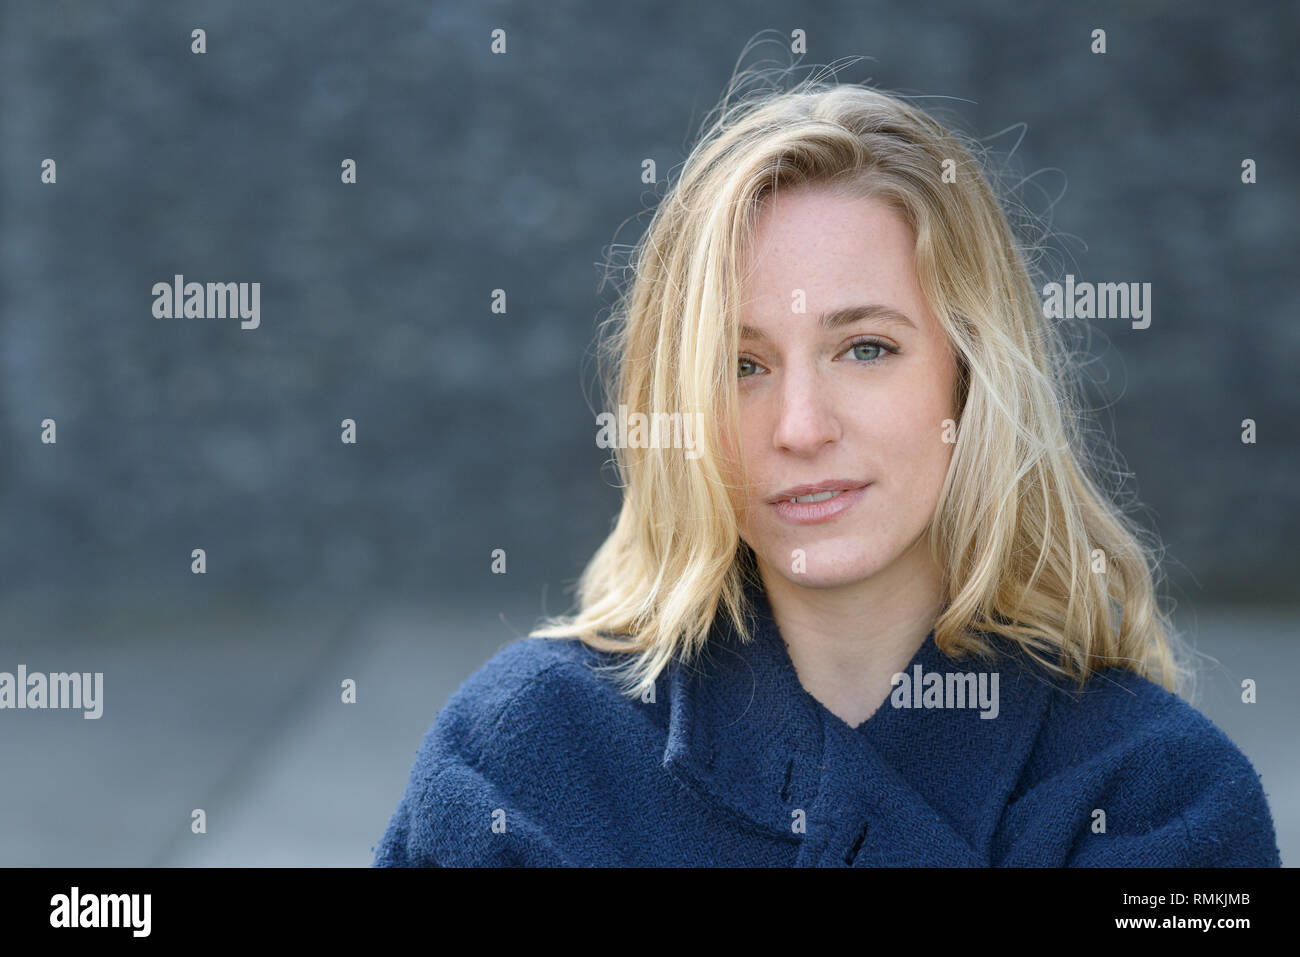 Attractive thoughtful young blond woman with tousled hair in fall or autumn standing outdoors looking pensively at the camera in a warm blue jacket - Stock Image